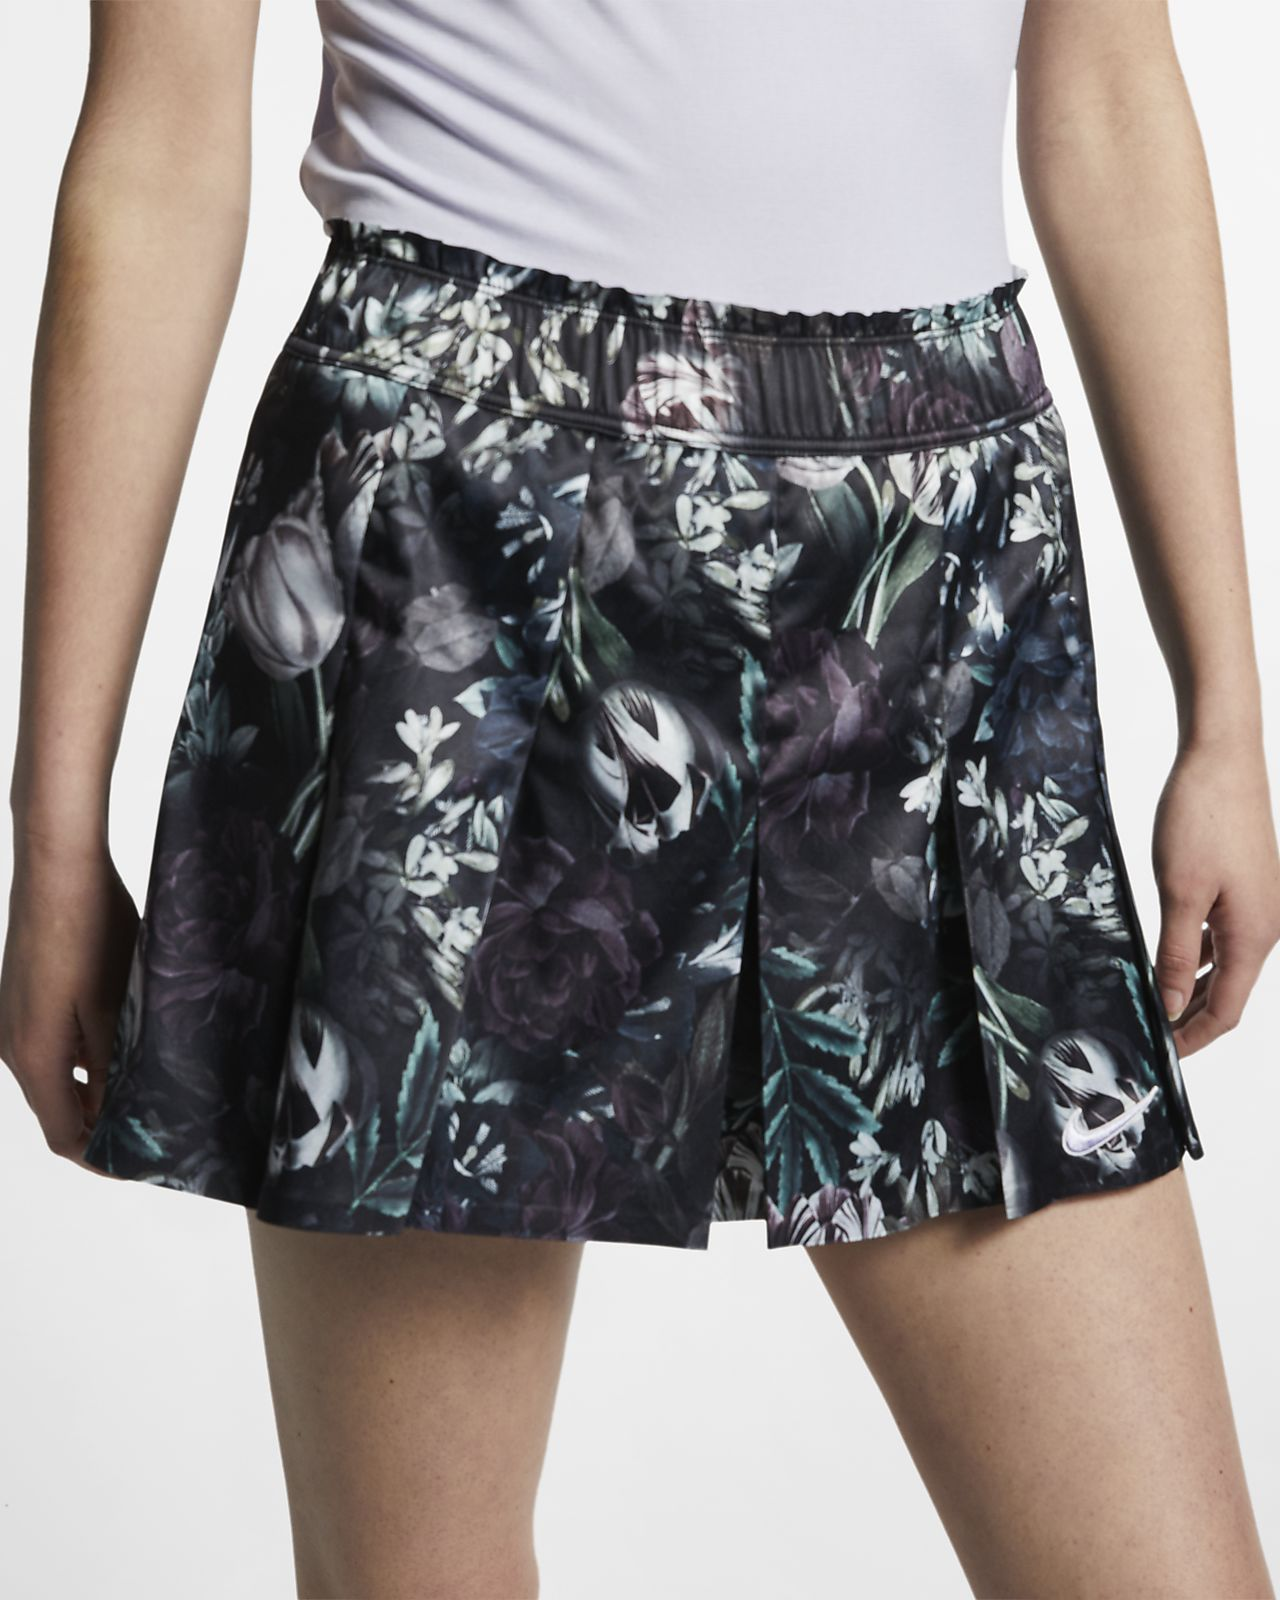 NikeCourt Flex Women's Tennis Skirt